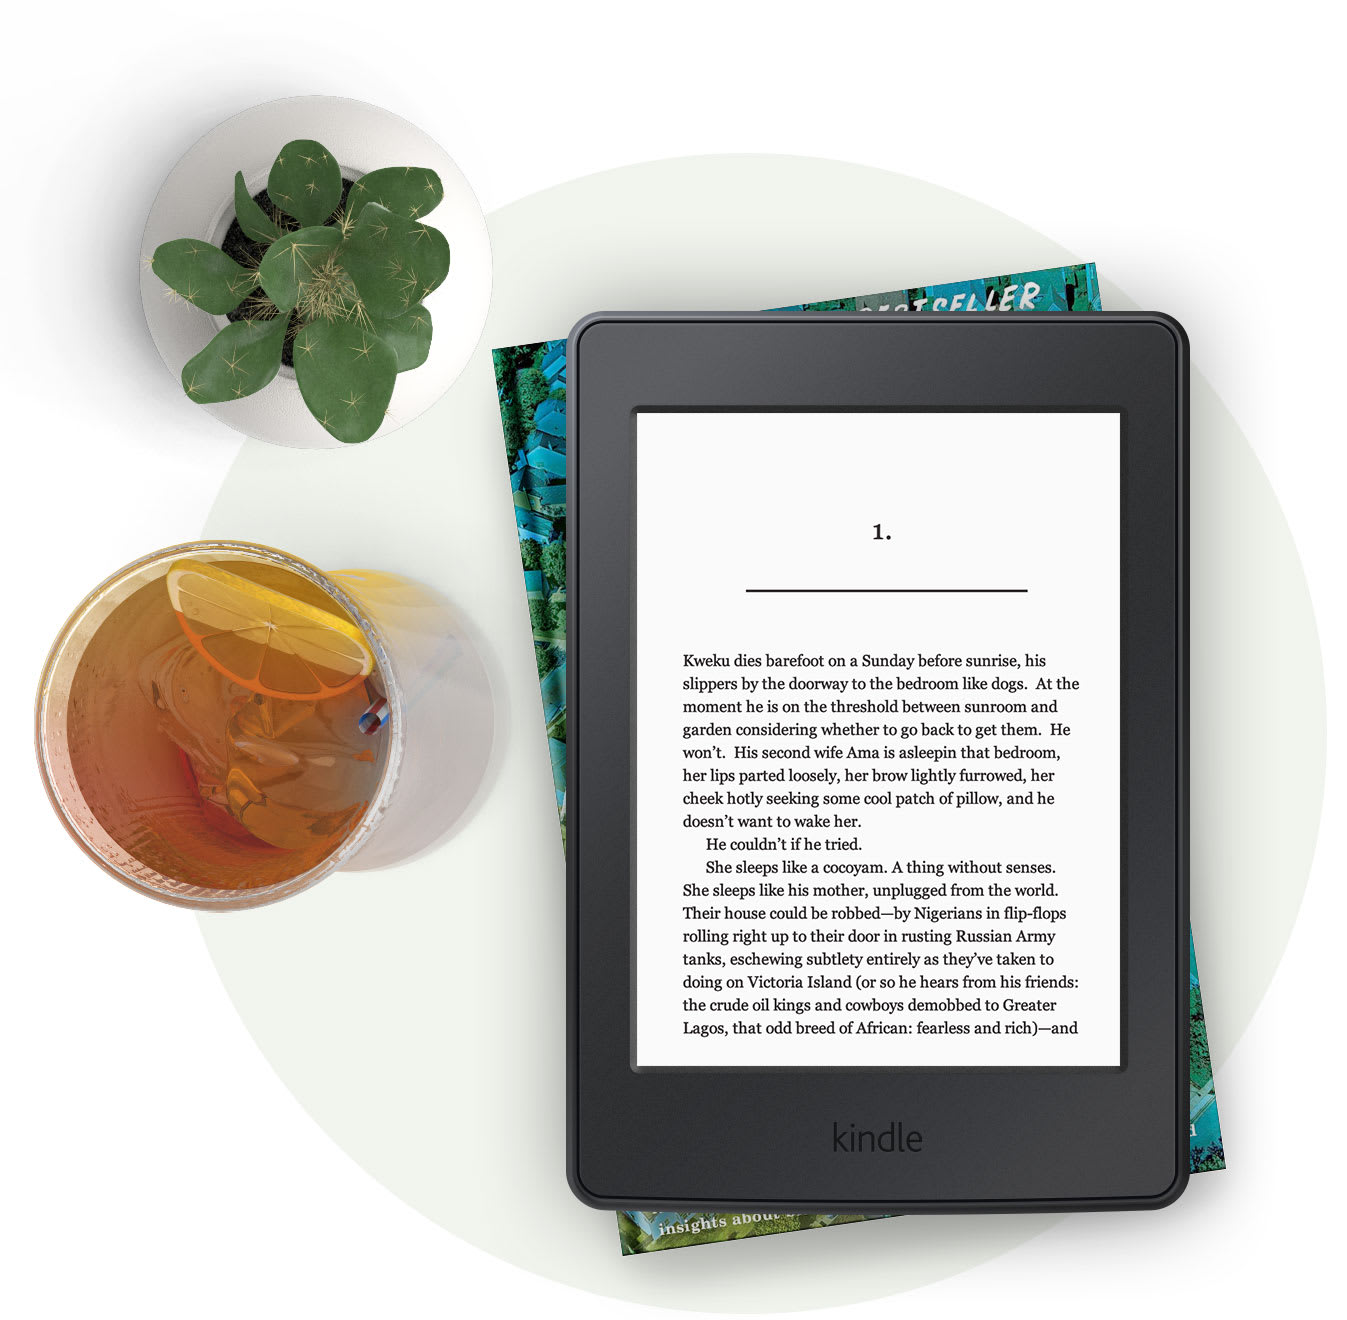 Kindle e-reader with a glass of iced tea